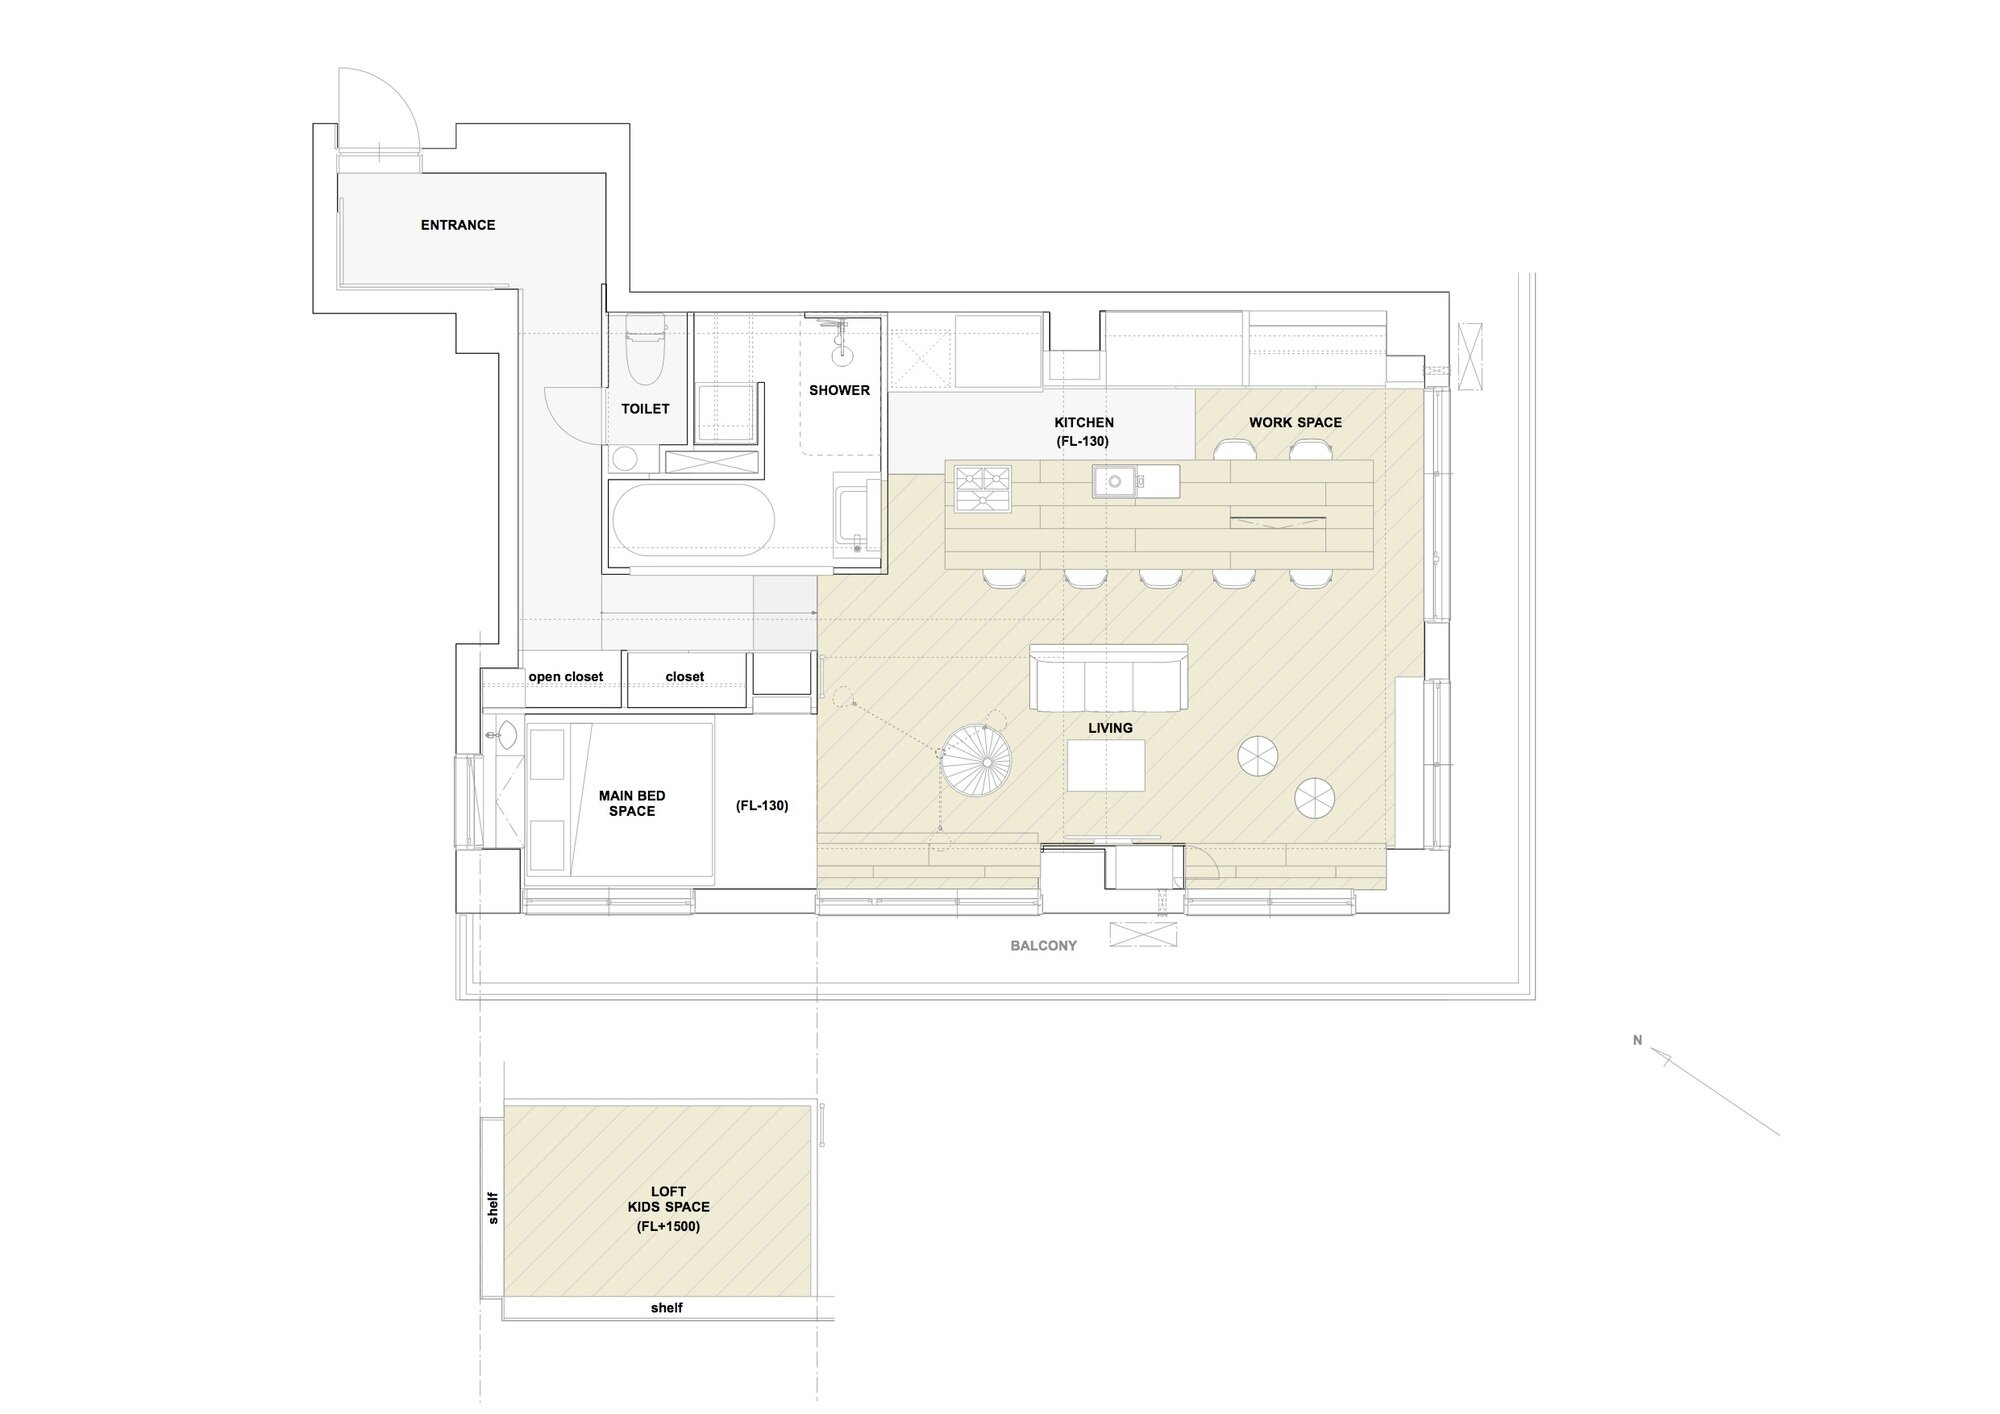 Tenhachi House - .8 Tenhachi Architect & Interior Design - Tokyo - Floor Plan - Humble Homes